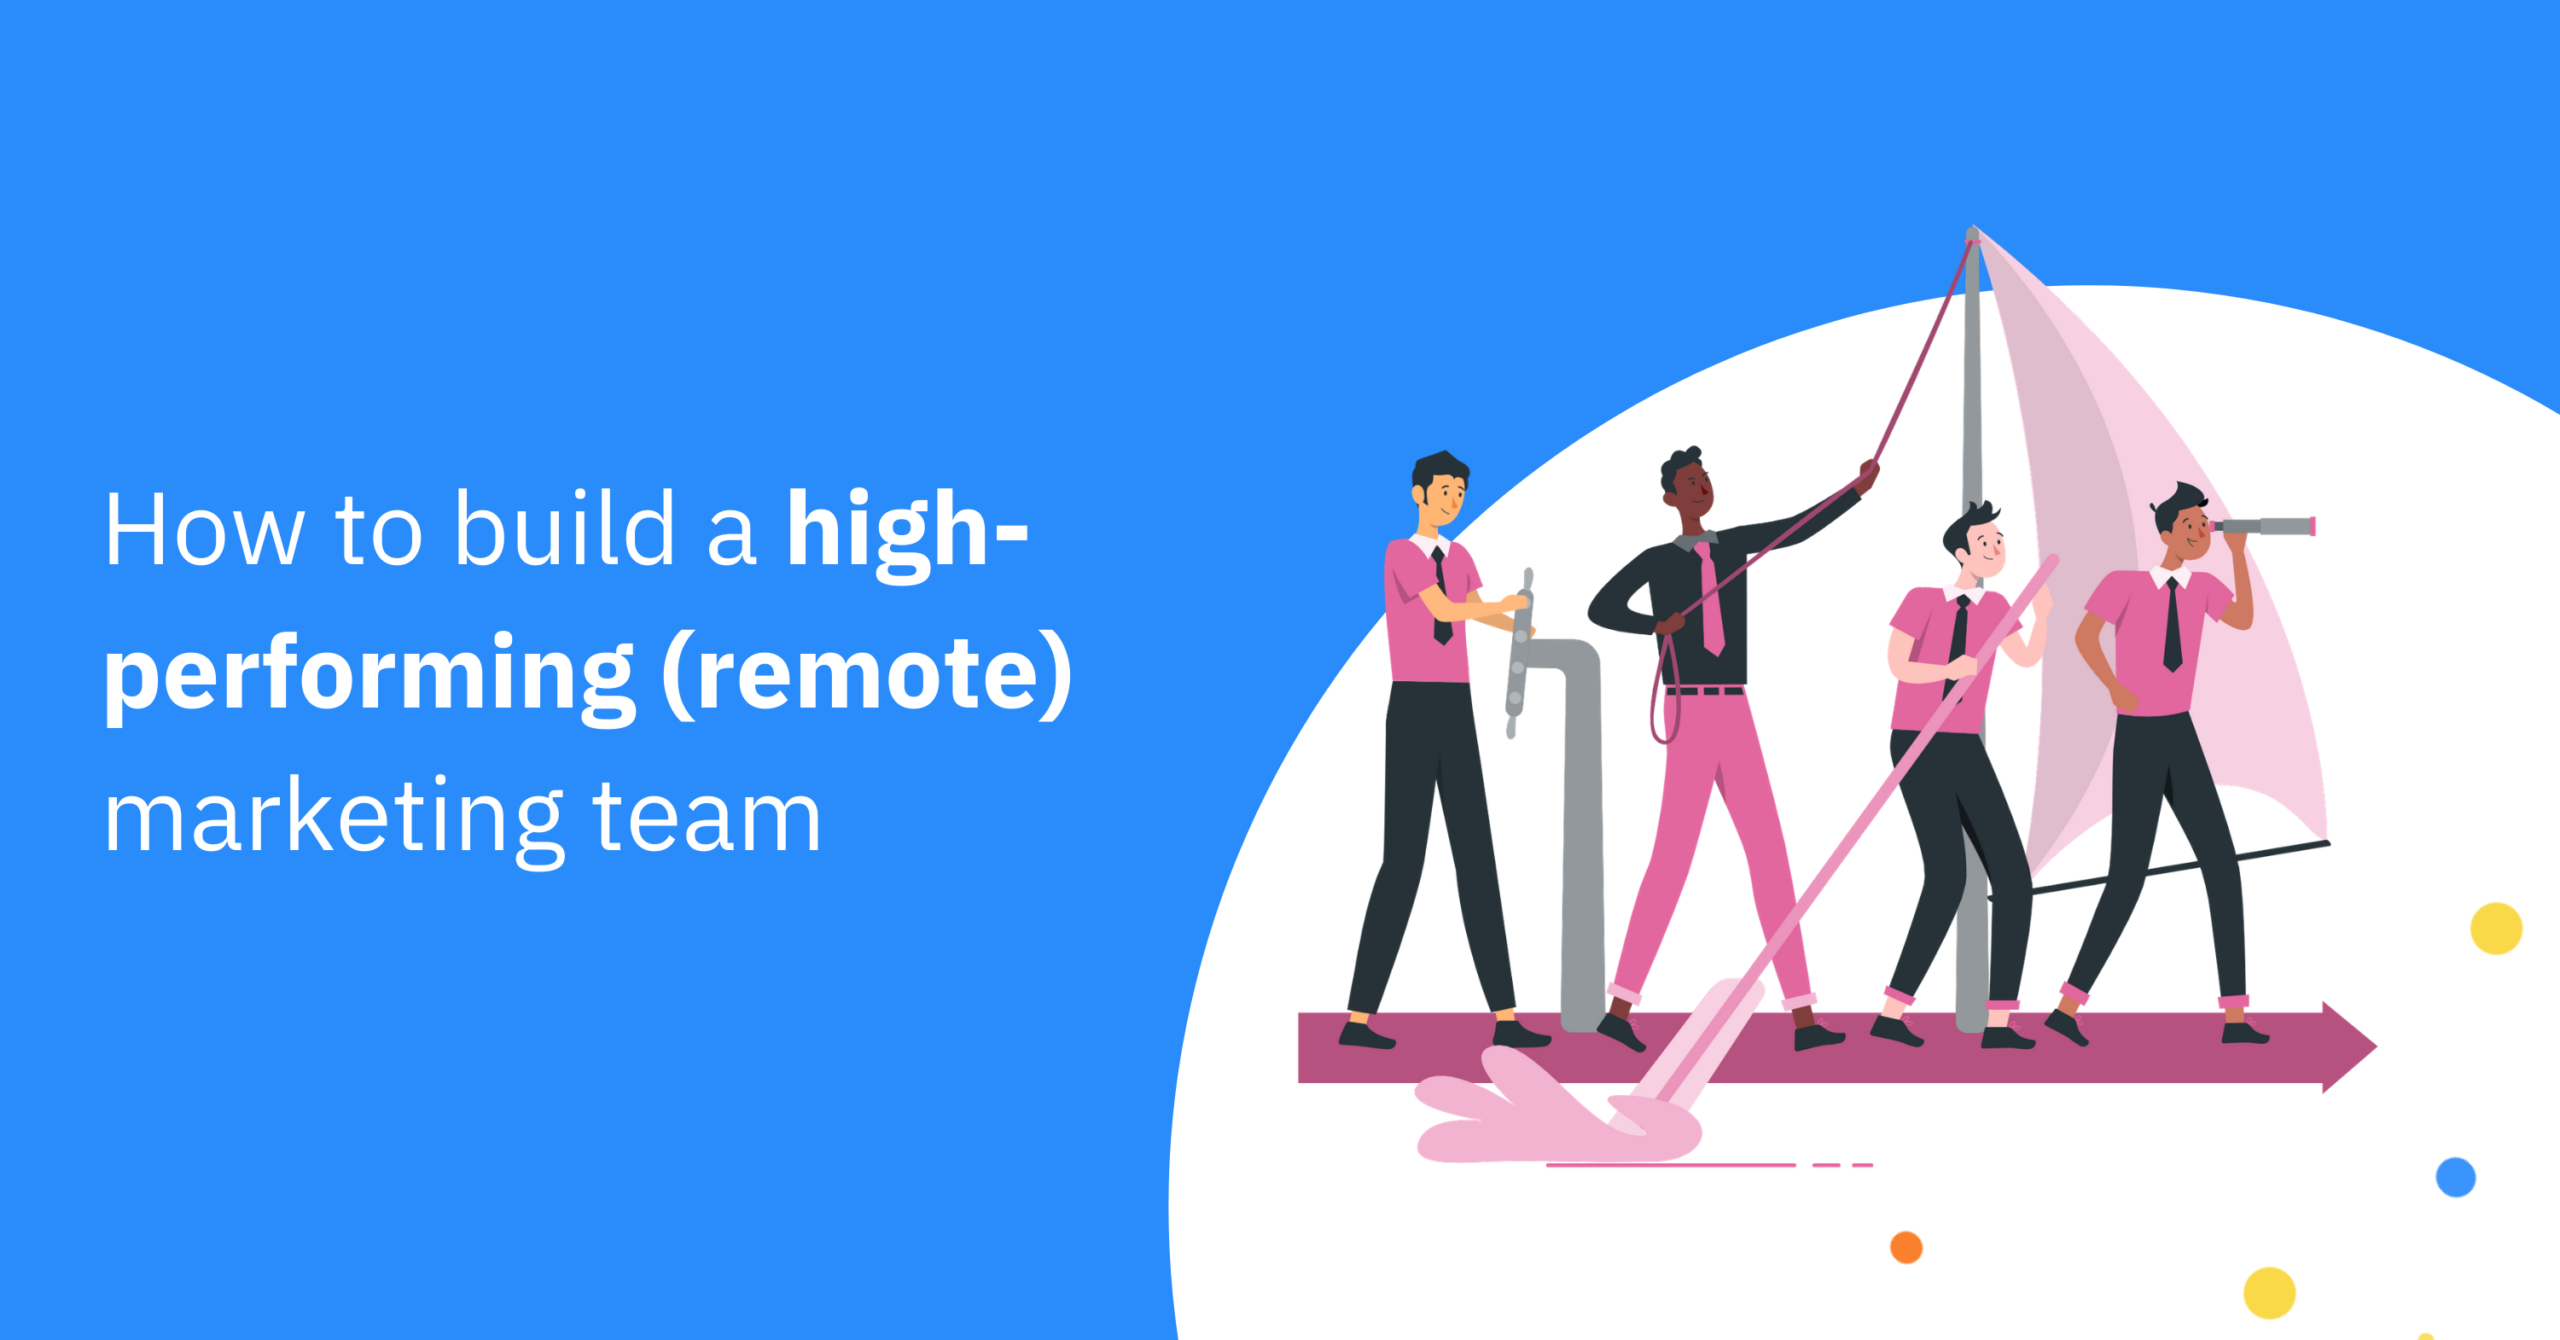 The key qualities of customer-centricity, operational excellence, digitally focused, and revenue-driving and how they bring marketing teams together